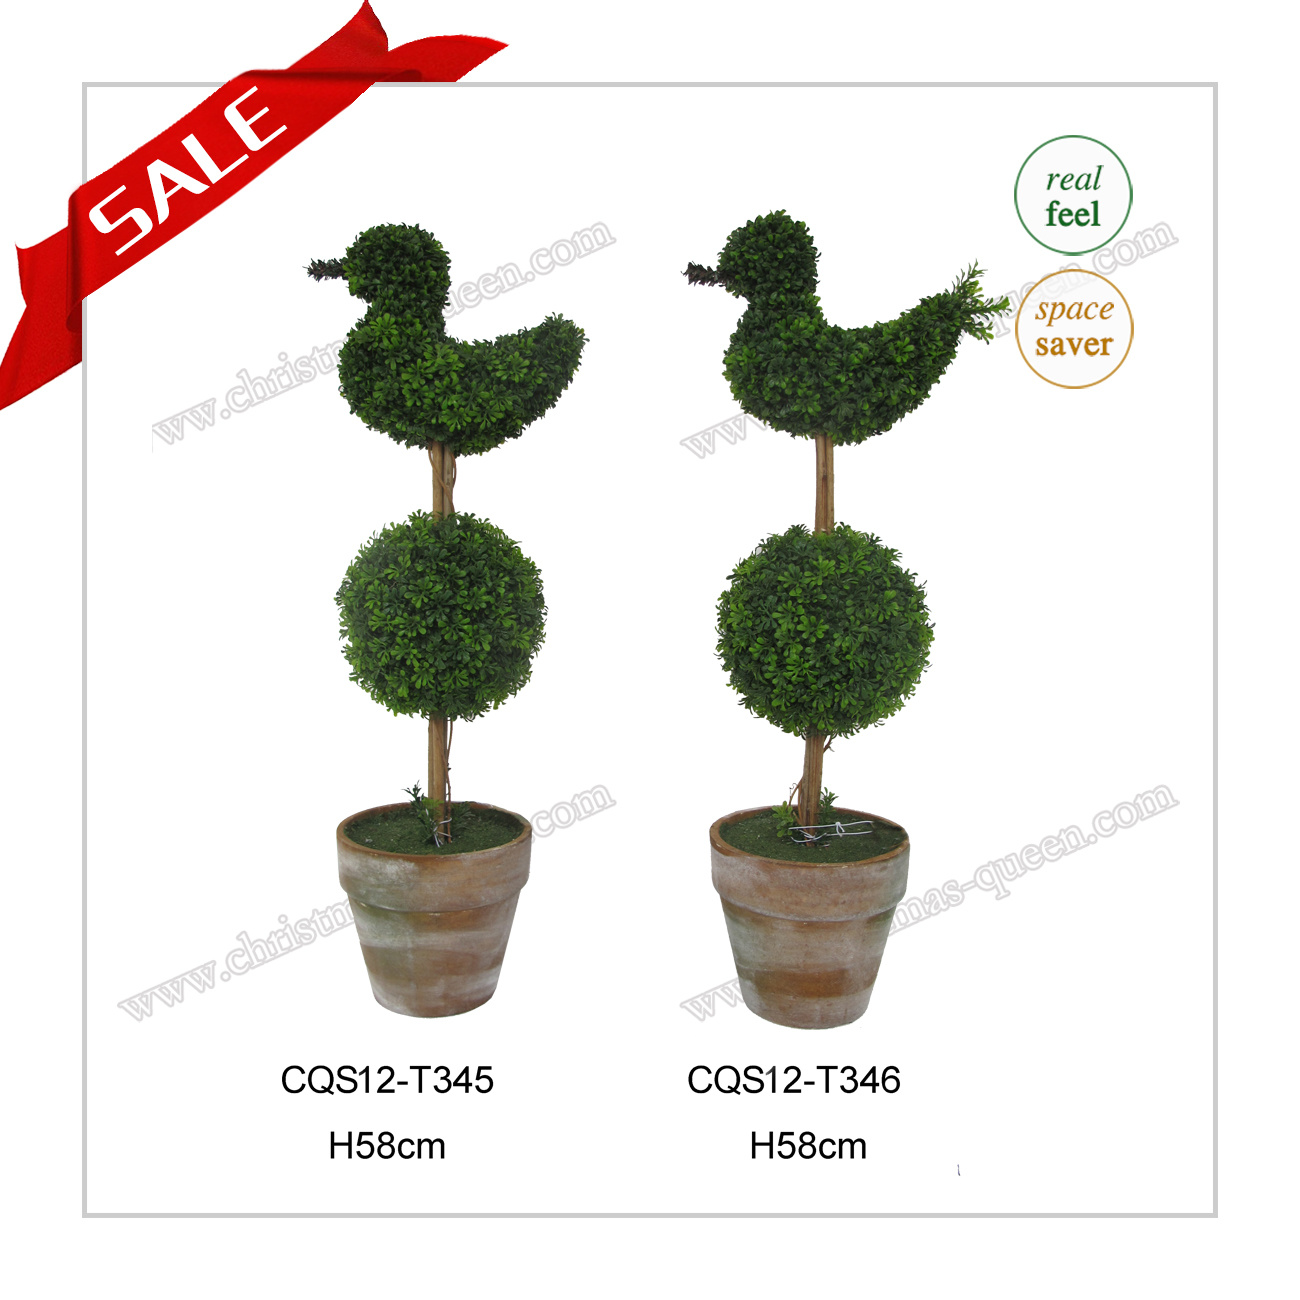 2017 New Arrival H36cm Artificial Topiary